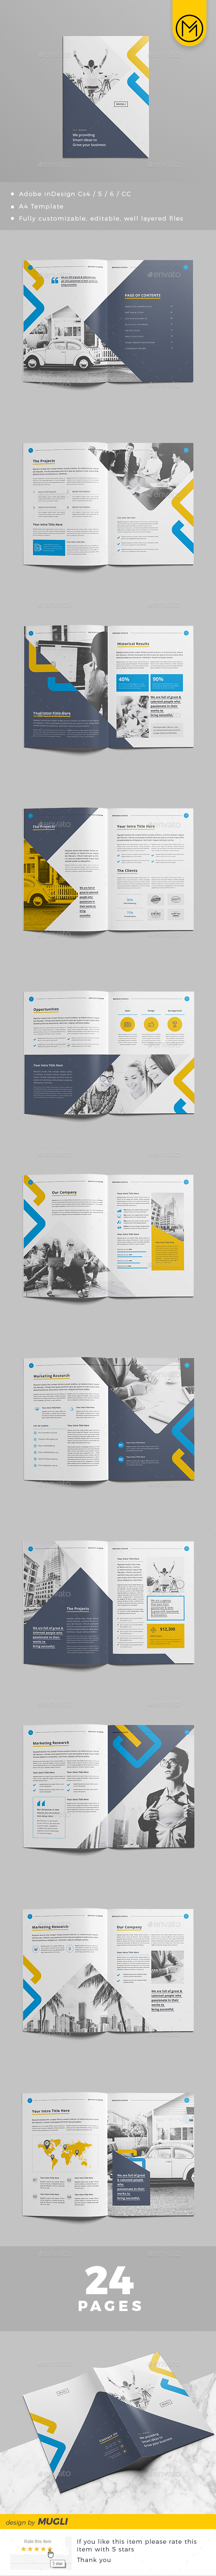 Indesign A4 Company Profile - Corporate Brochures